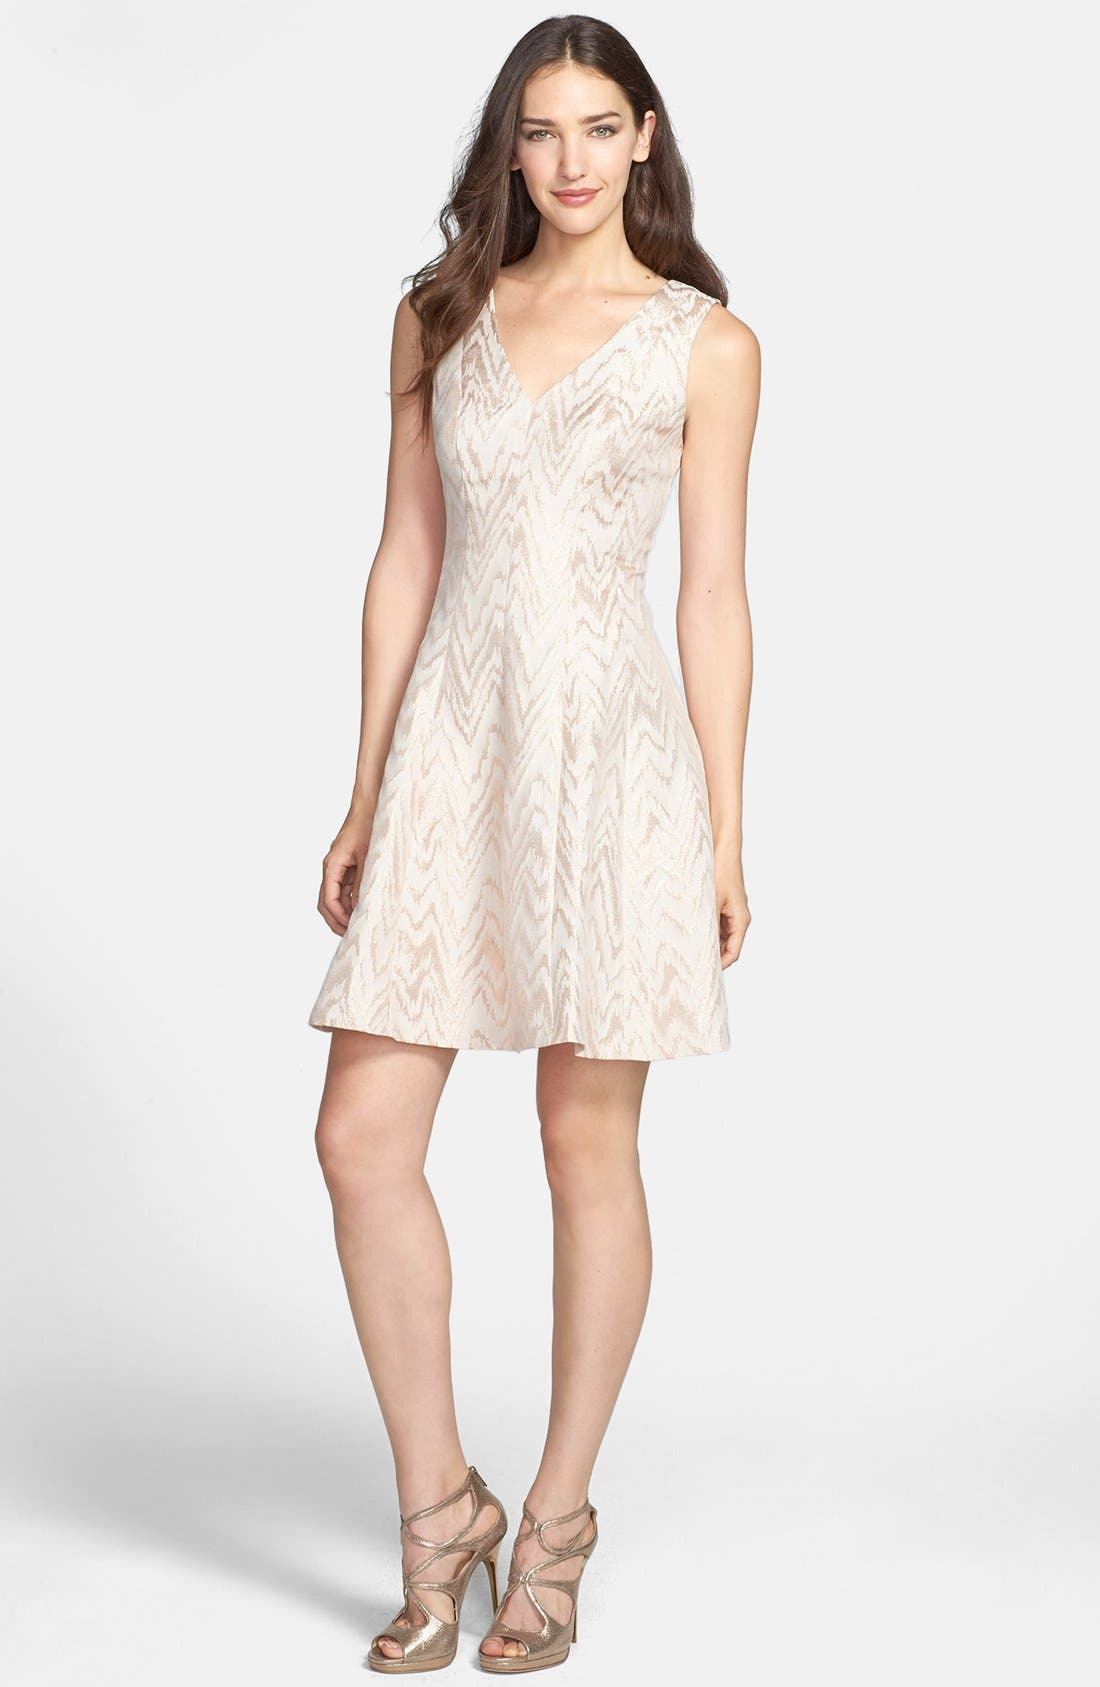 Main Image - Vince Camuto Metallic Jacquard Fit & Flare Dress